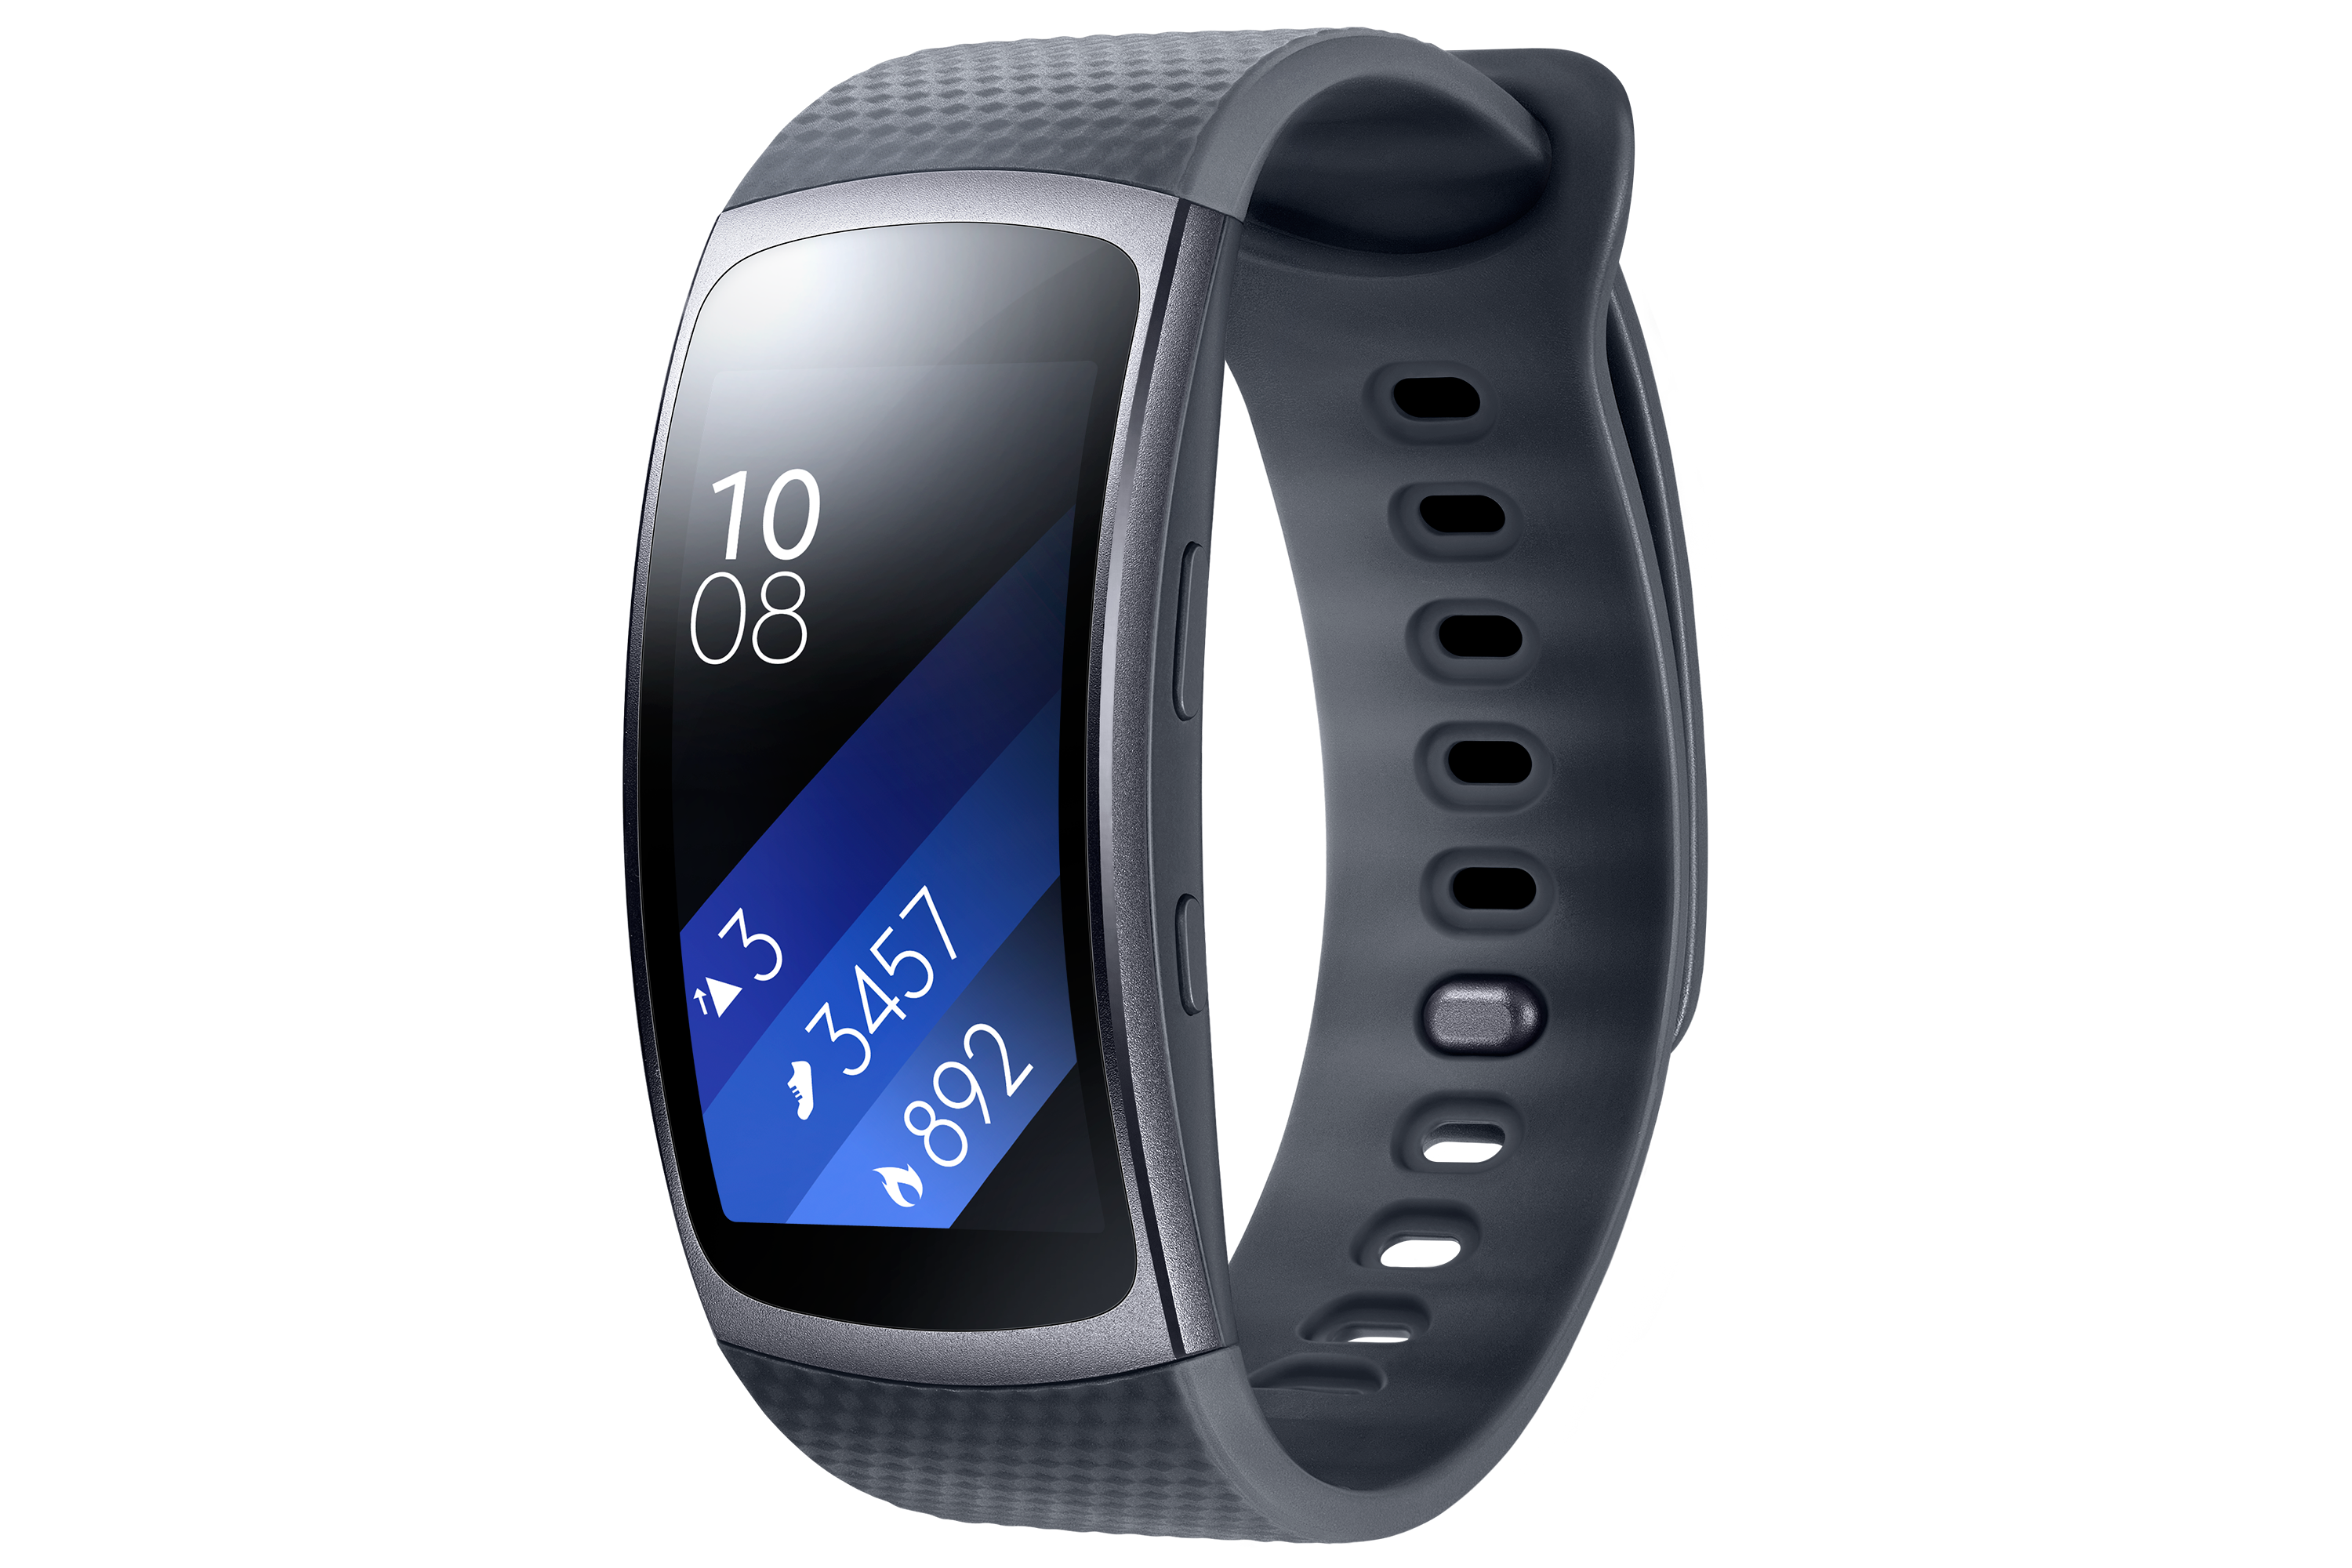 Gear Fit2 - Large